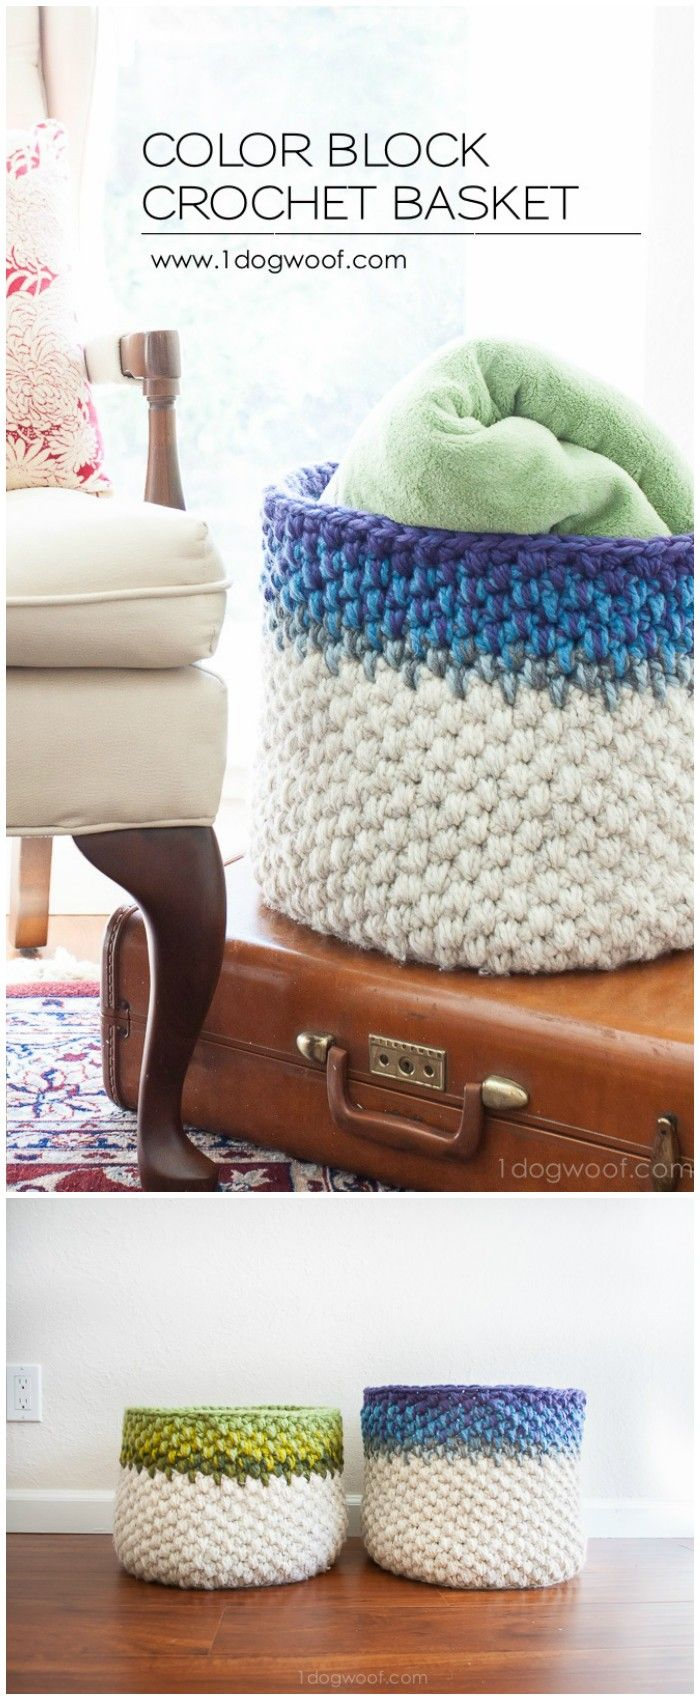 Crochet Basket Patterns To Organize Your Home | Bordados | Pinterest ...